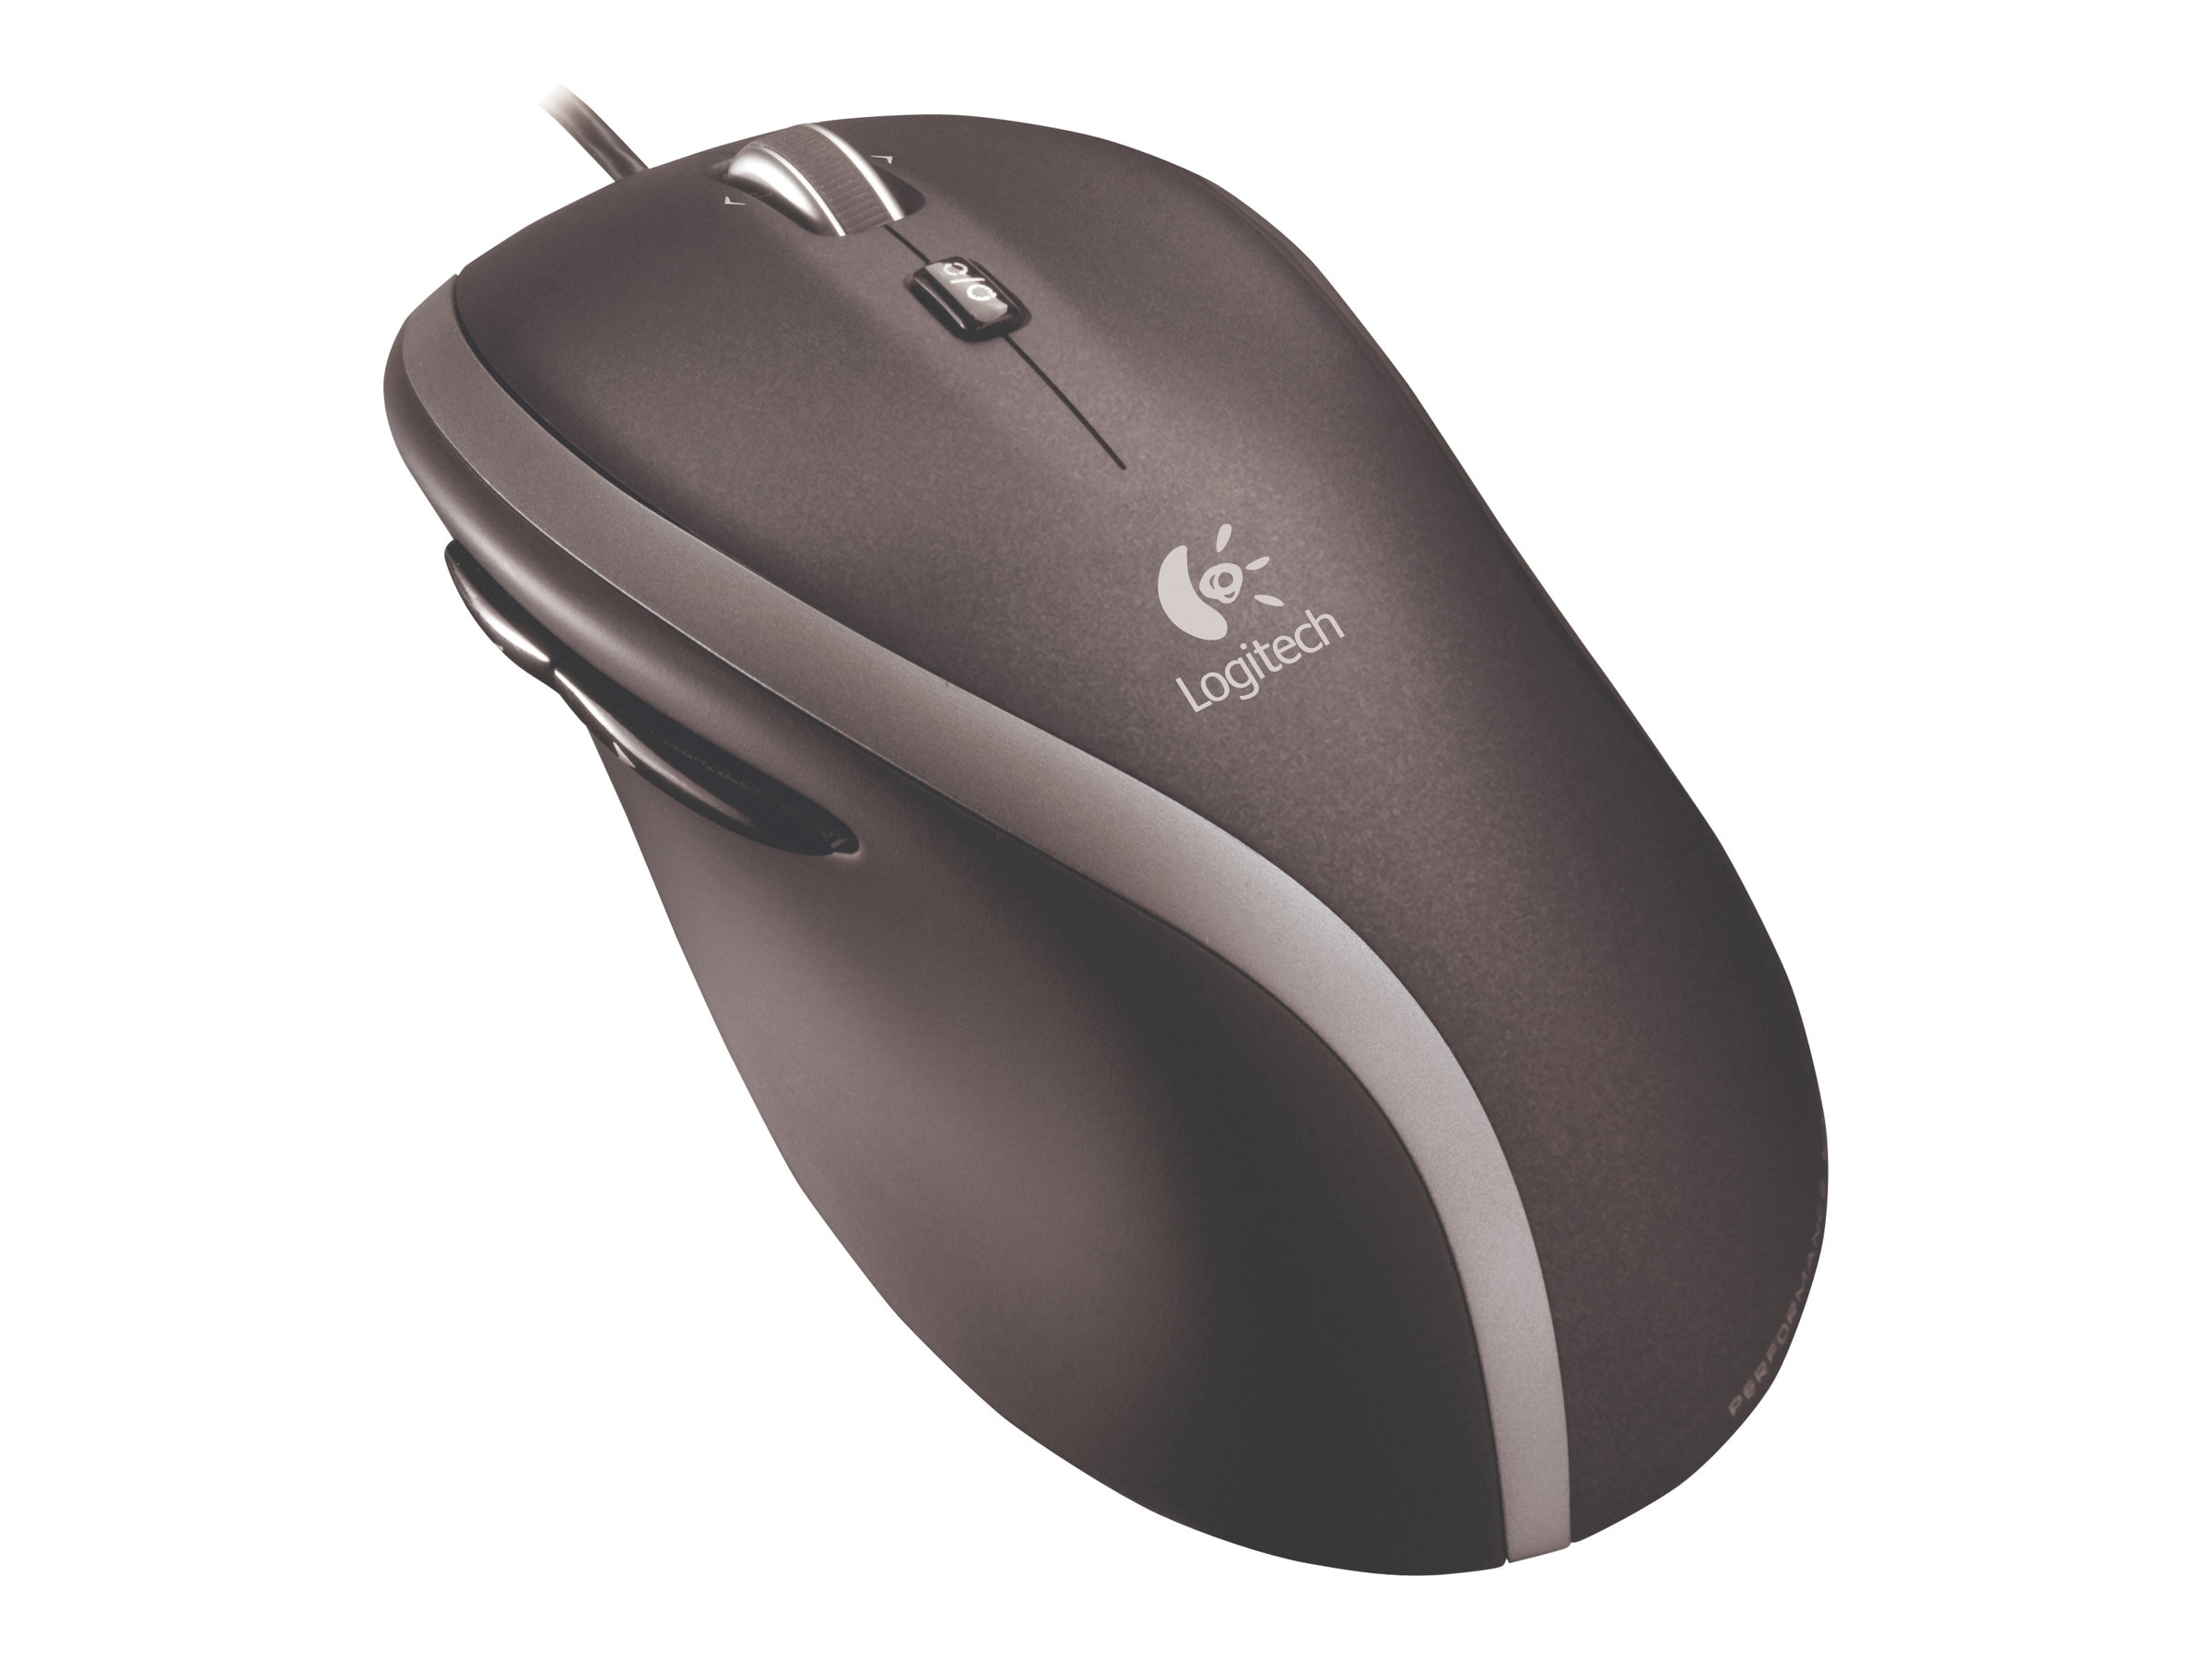 Logitech Corded, Fast-Scrolling Mouse M500, 910-001204